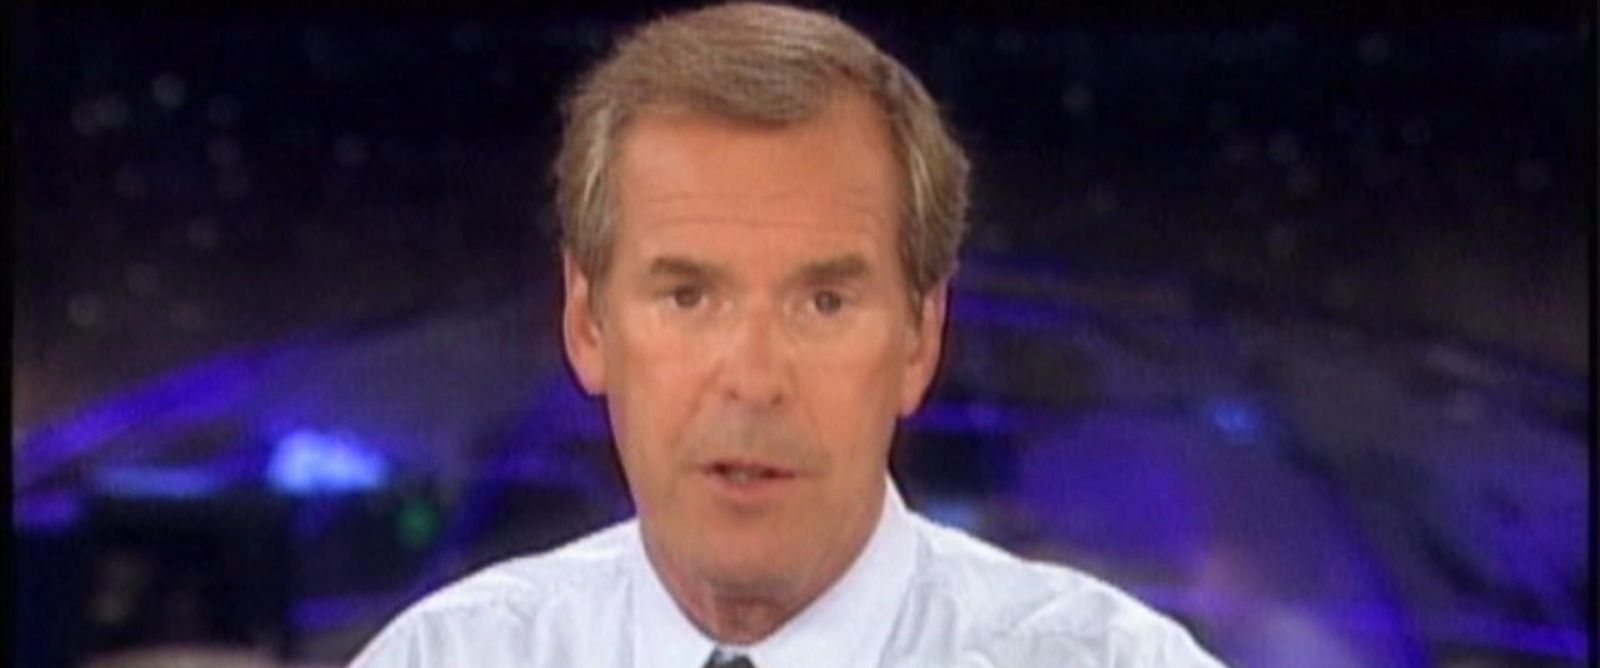 PHOTO: ABC News anchor Peter Jennings reporting on September 11, 2001.